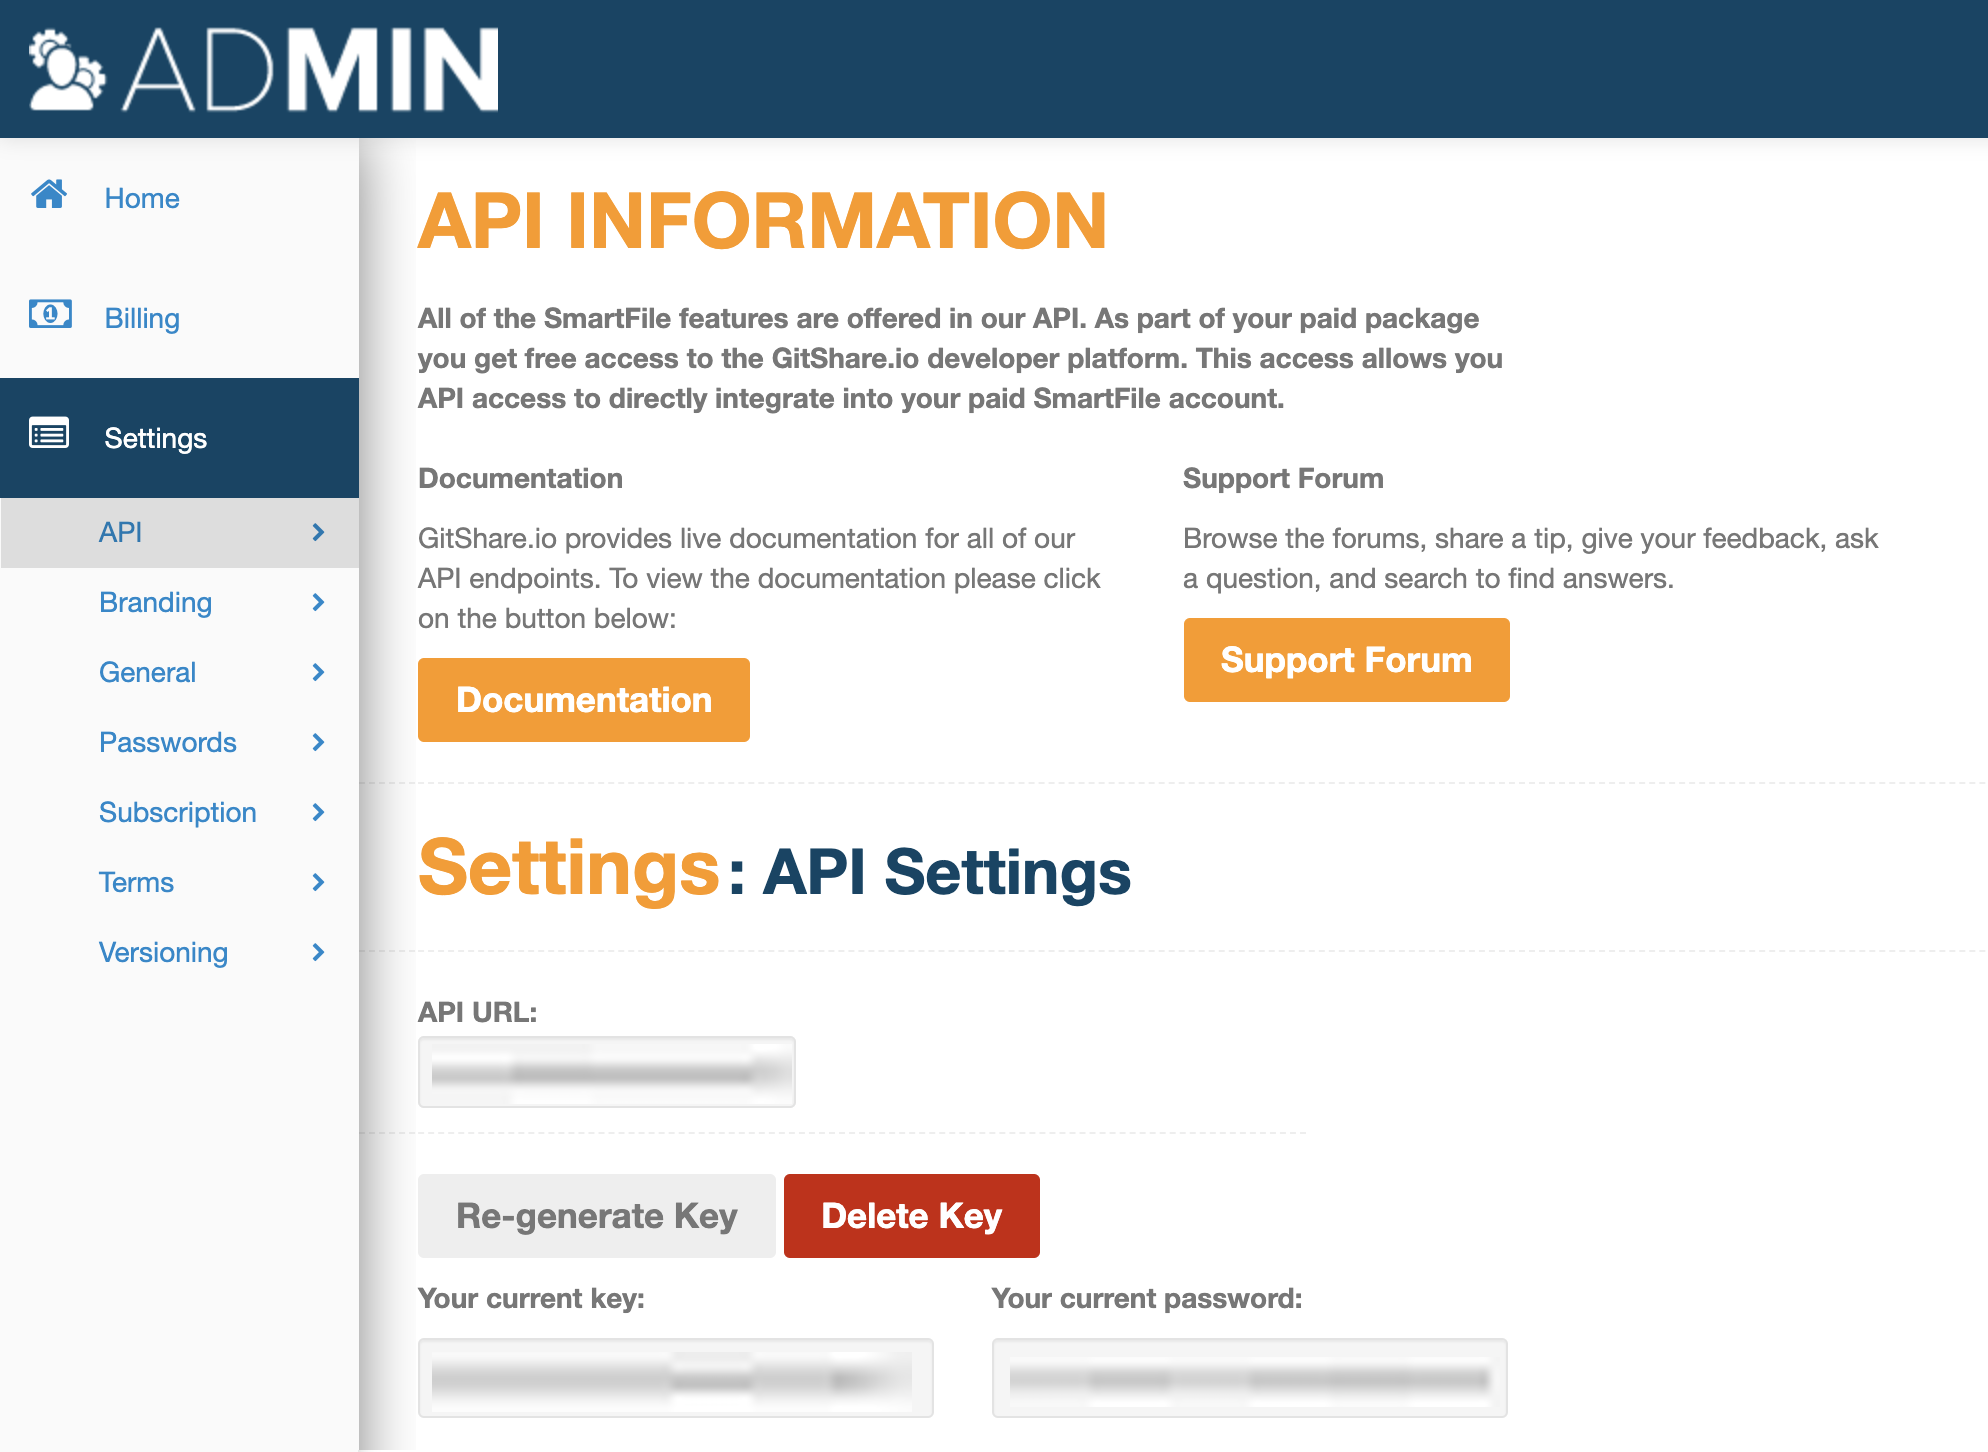 API key and password in site settings